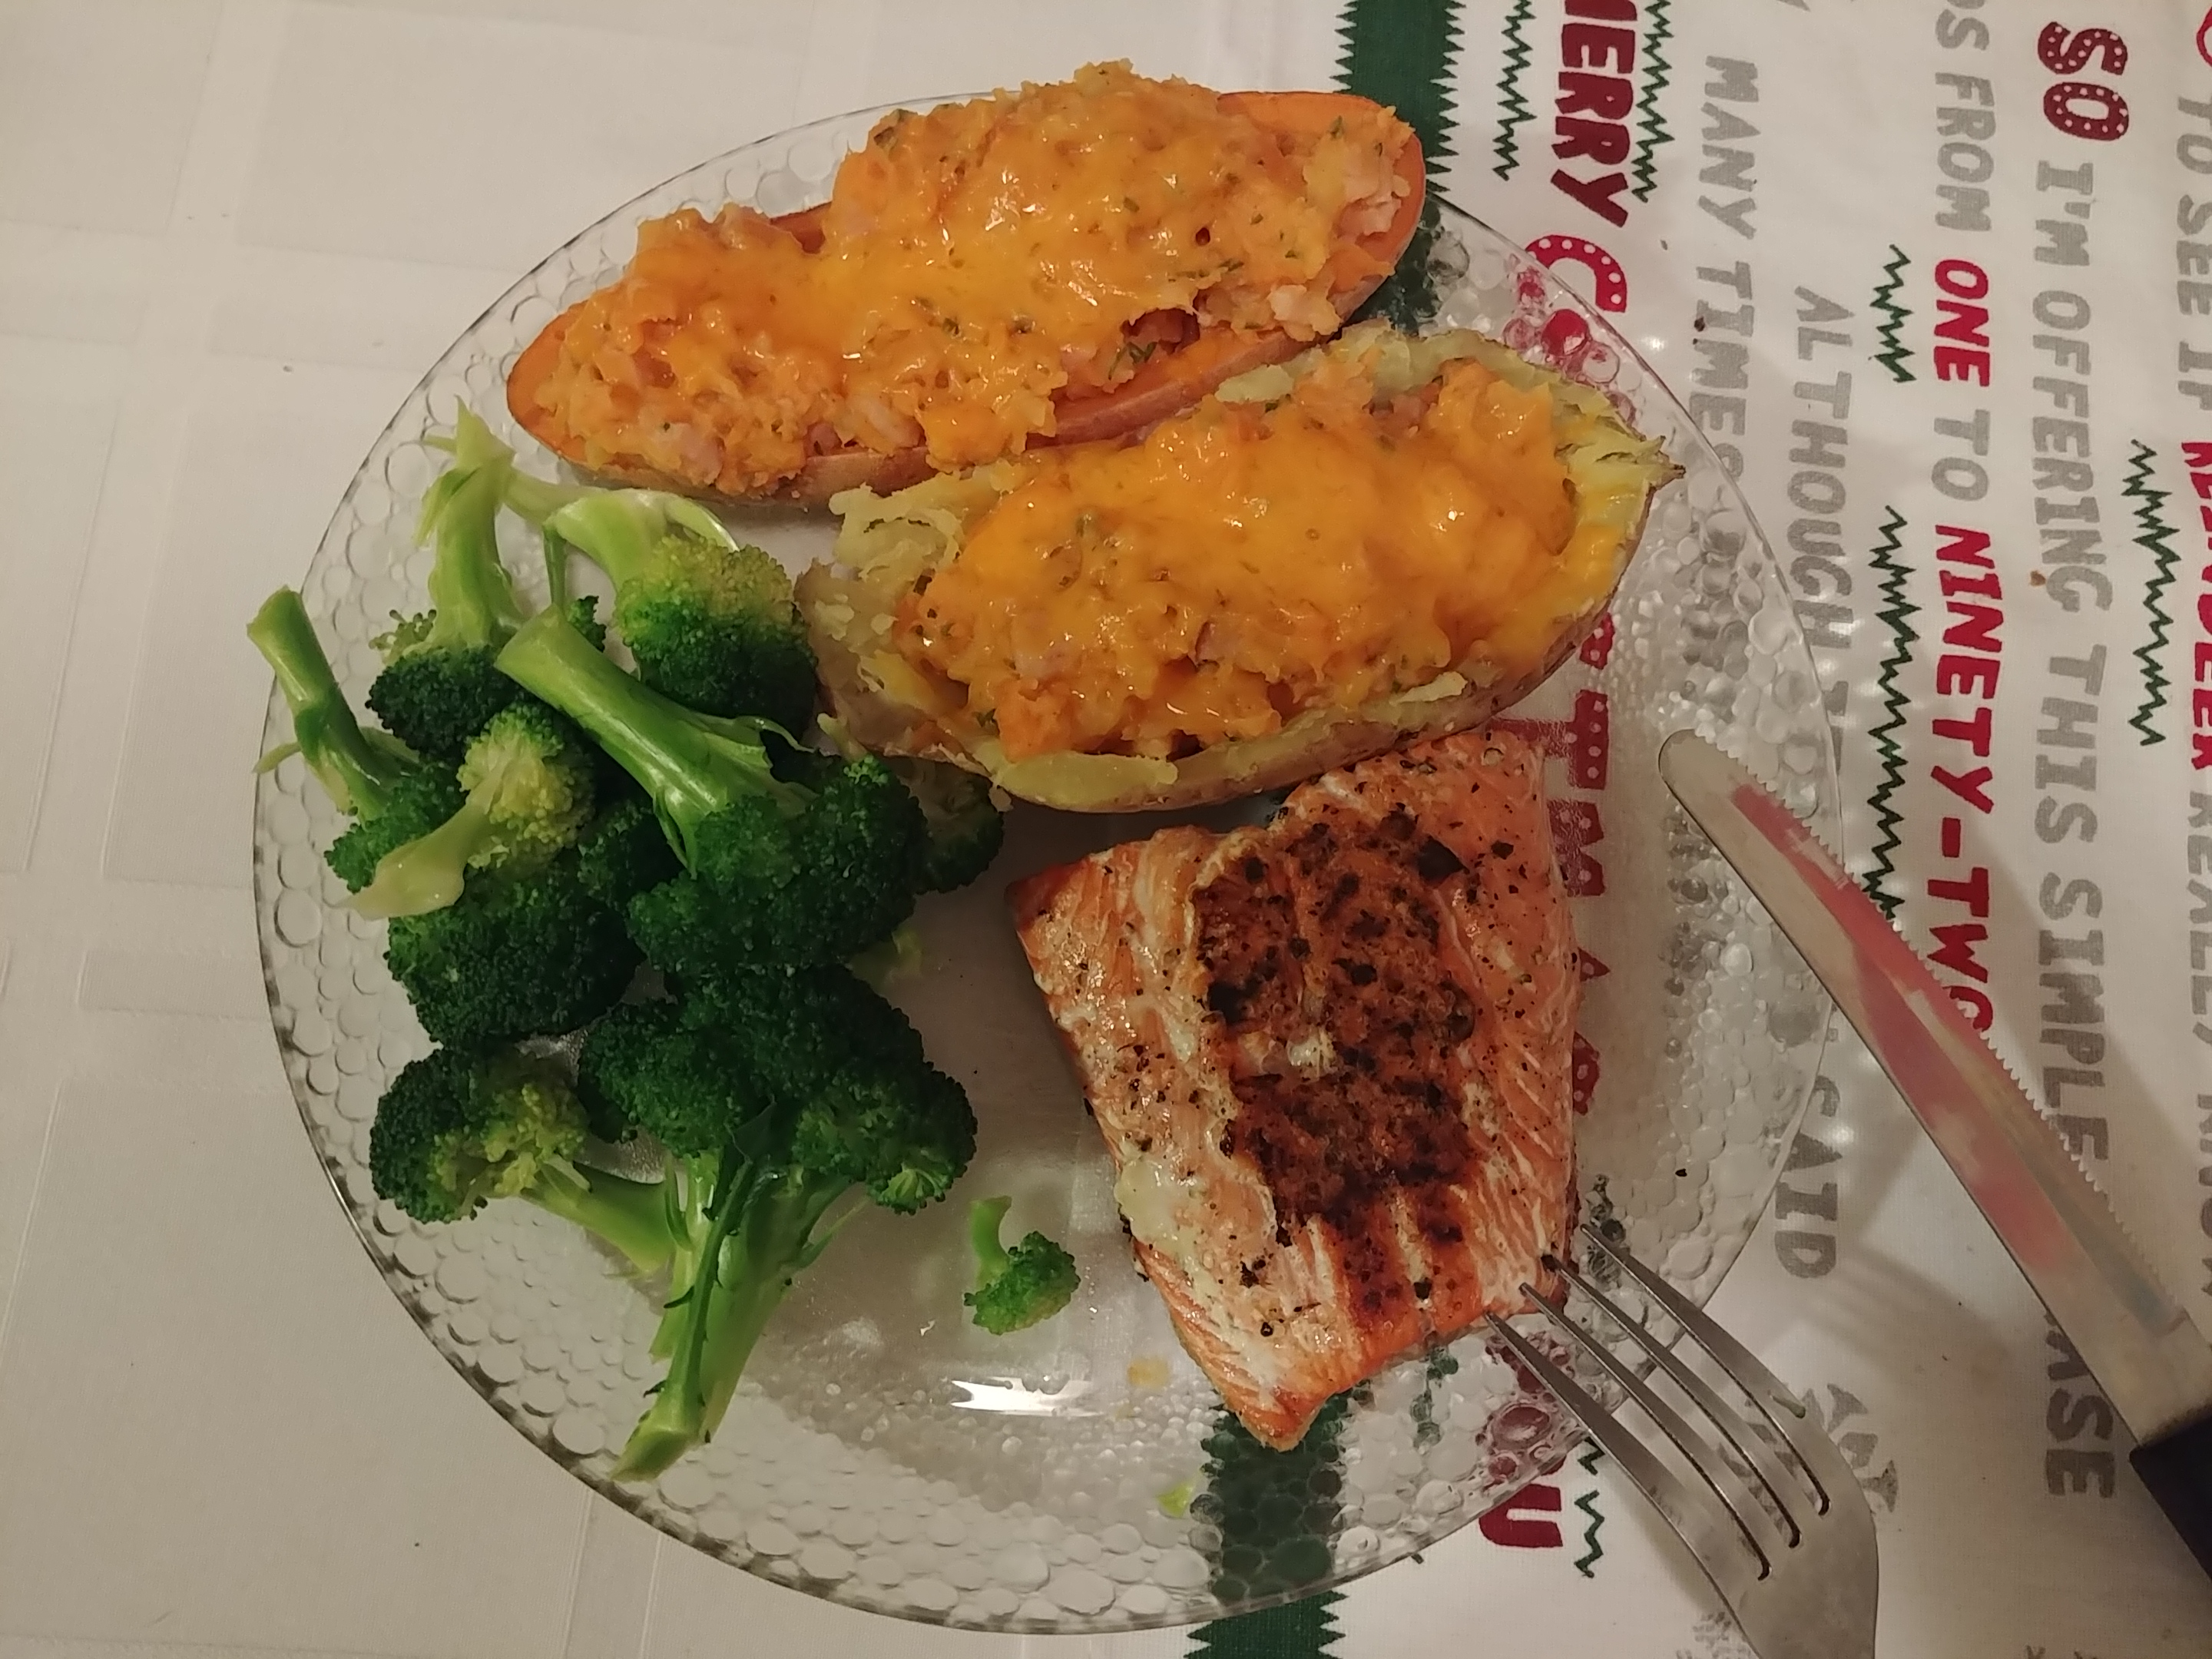 Twice Baked Yams with salmon and broccoli